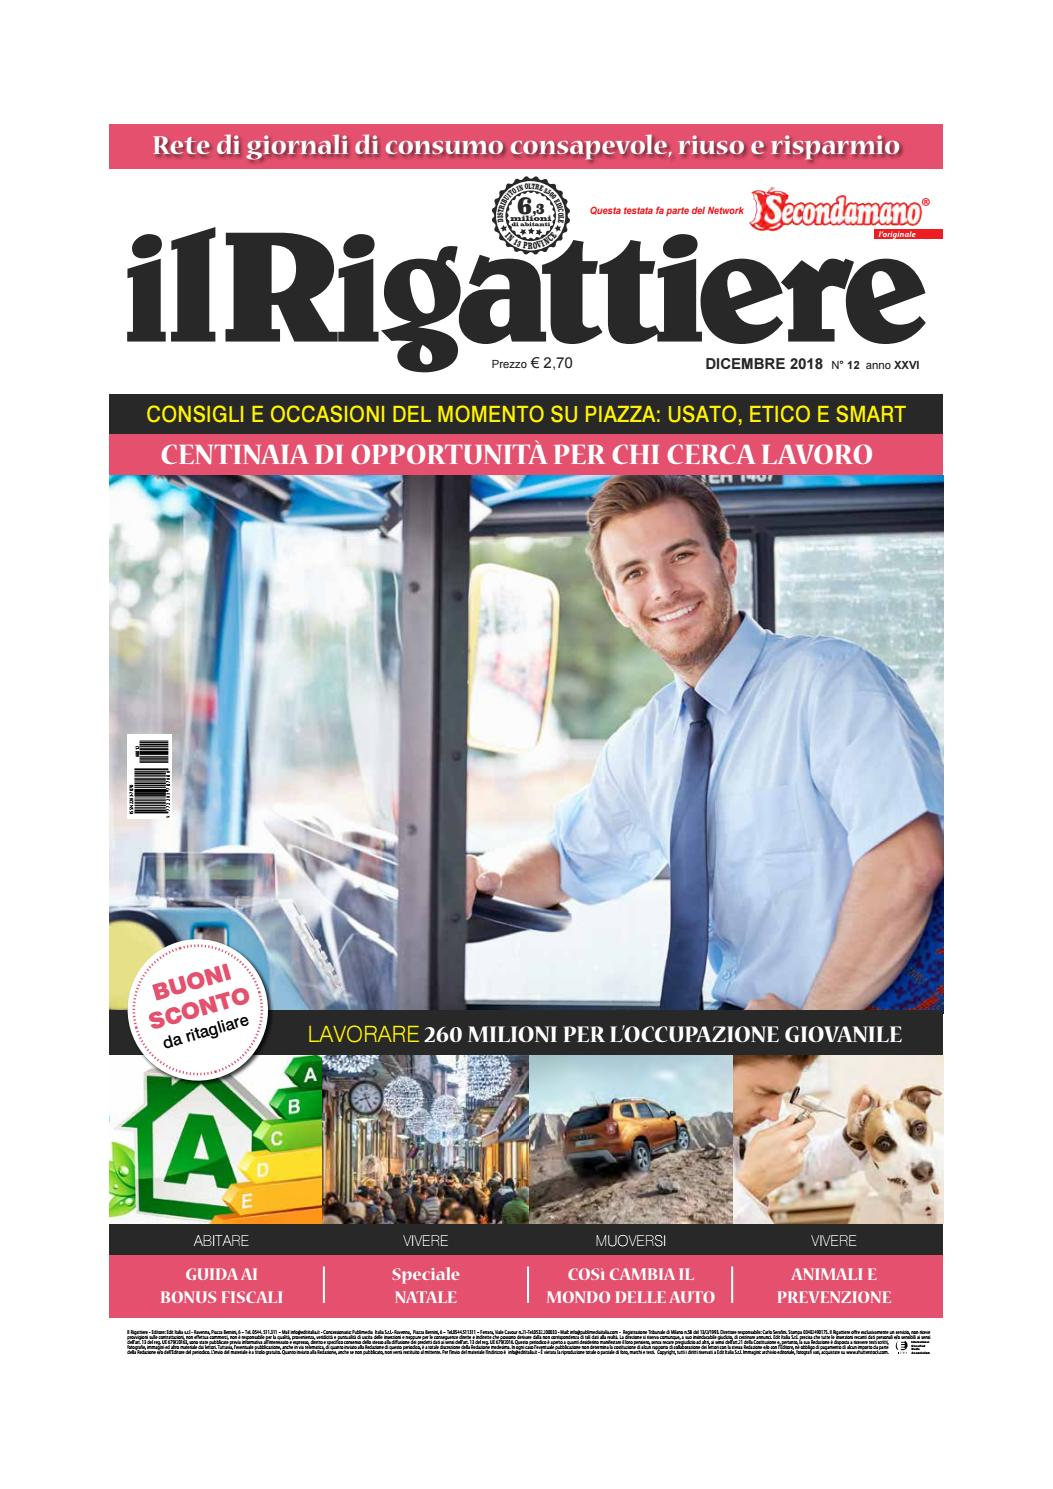 Il Rigattiere dicembre 2018 by Edit Italia S.r.l. - issuu f26793ce2c38